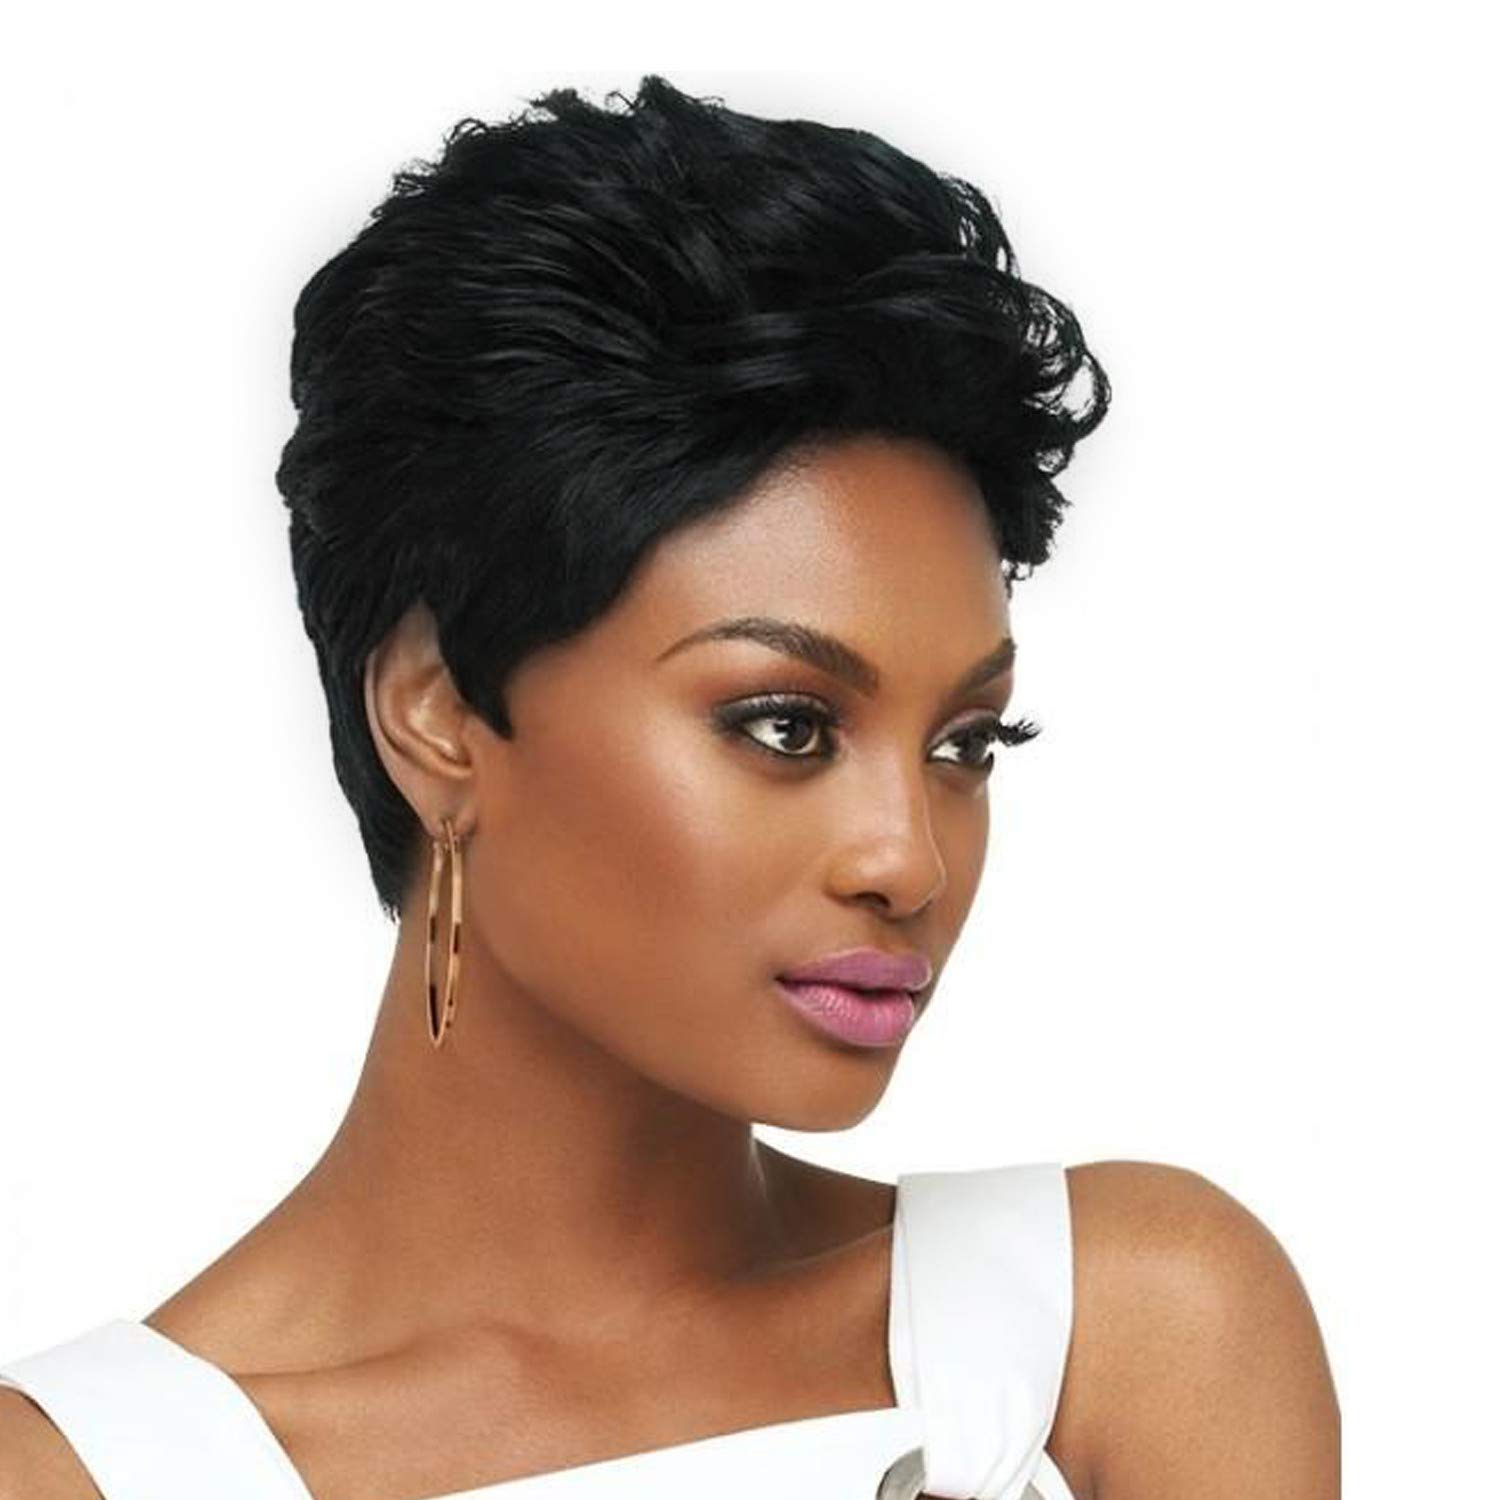 Wig,SUPPION High Quality Black Short Curly Wigs Real Human Hair Fashion Black Women Wigs - 8 inch - Cosplay/Party/Costume/Carnival/Masquerade (Black)